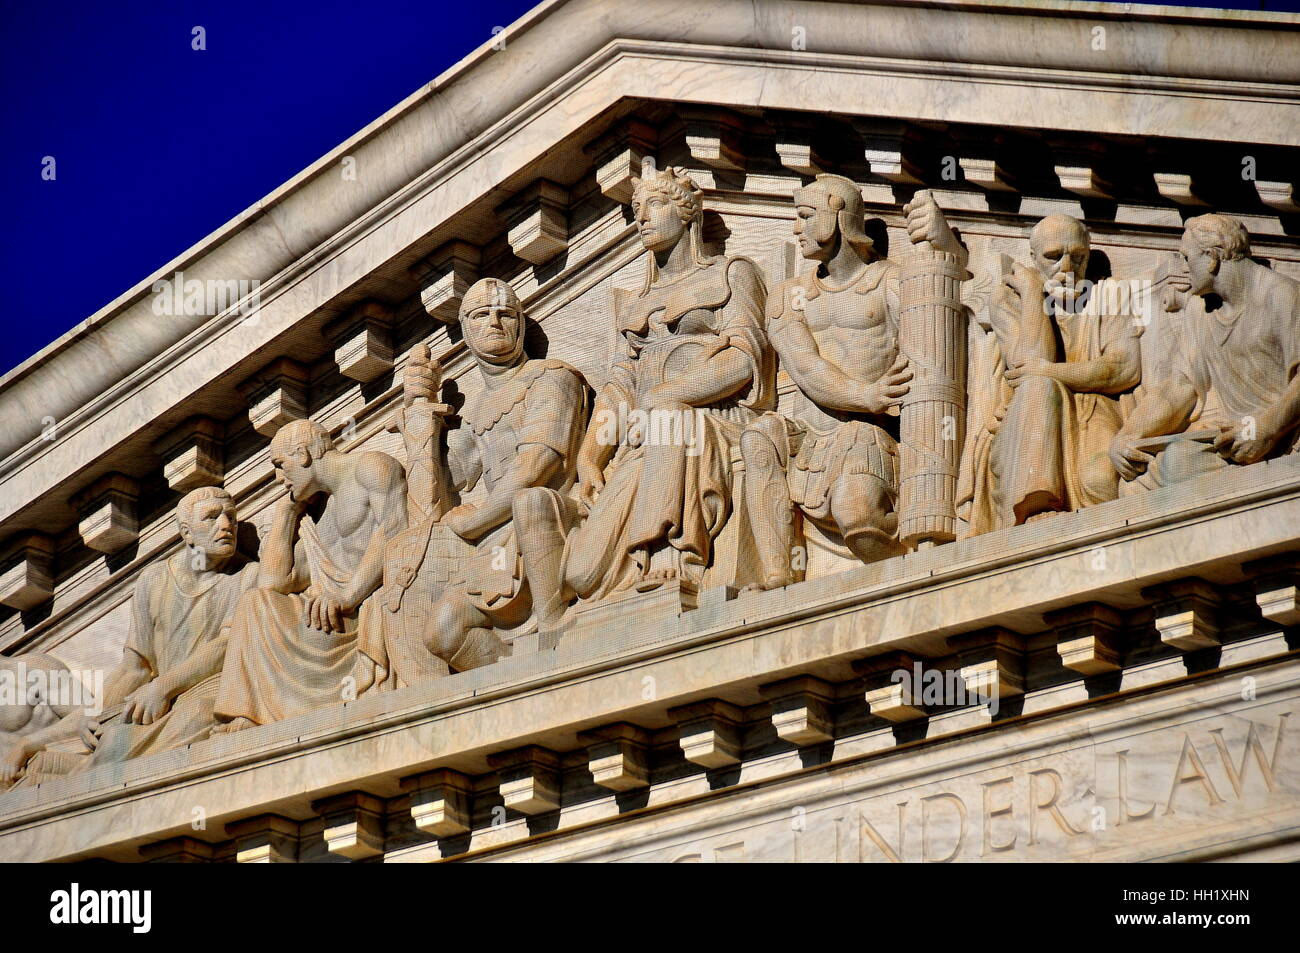 Washington, DC:  Sculpted figures on the pediment of the neo-classical facade of the 1935 United States Supreme - Stock Image